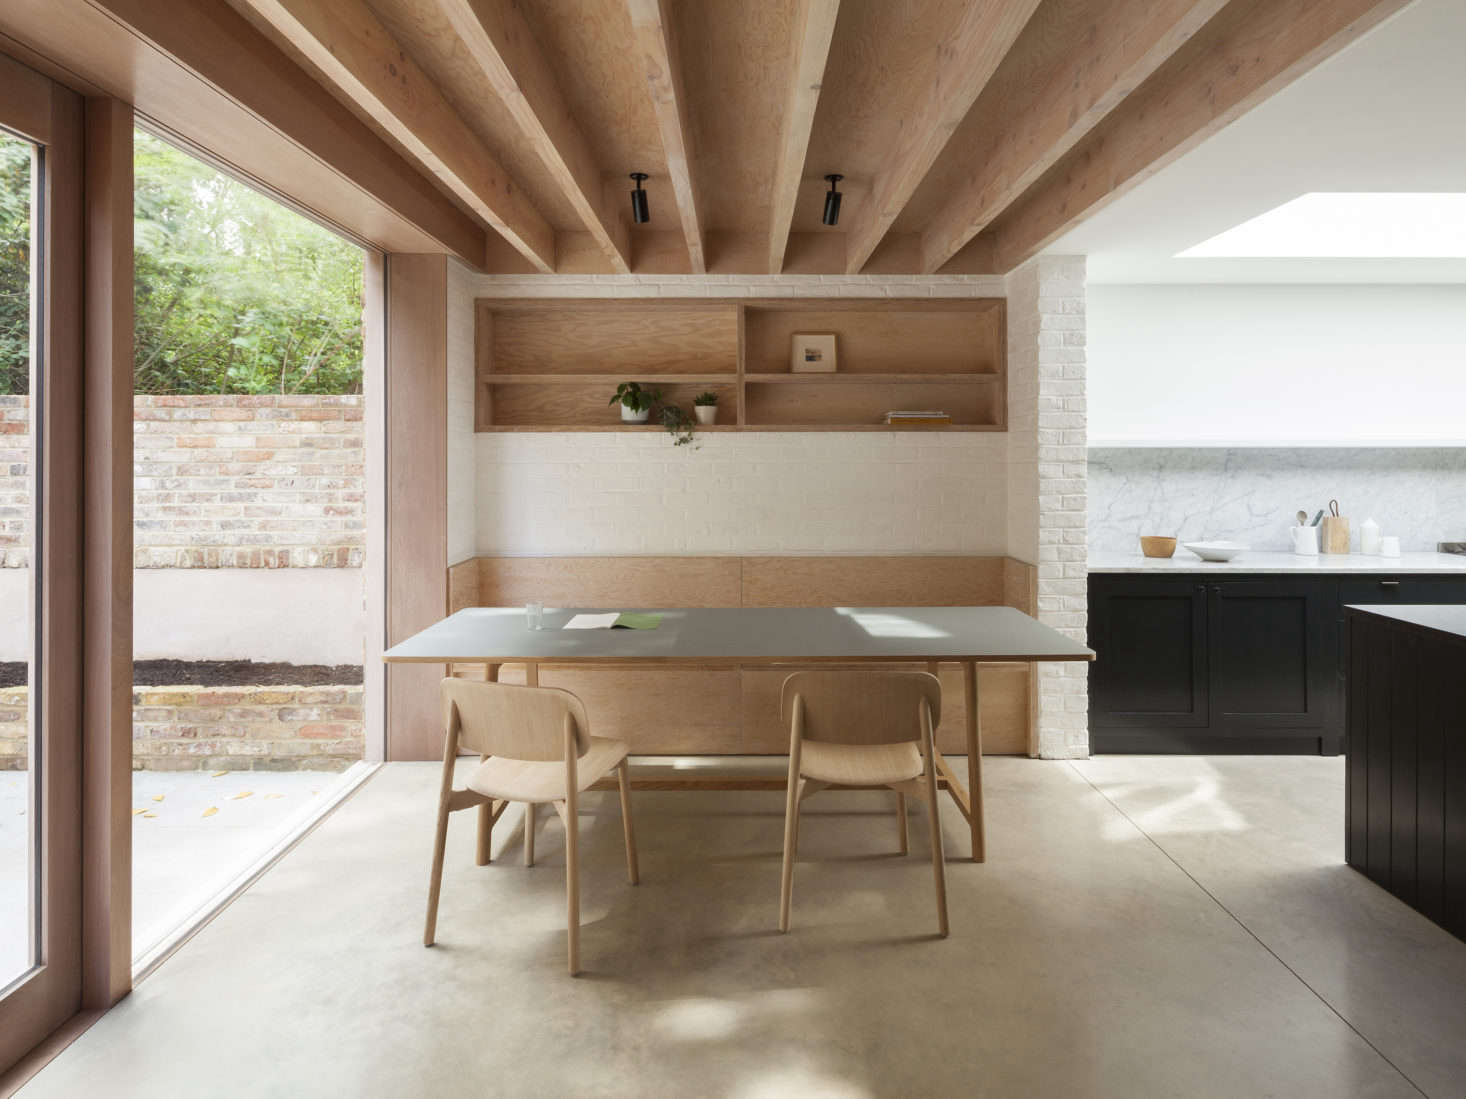 The dining area has a white slurried brick wall, a built-in banquette, and a recessed shelf in Douglas fir, with exposed joists above.